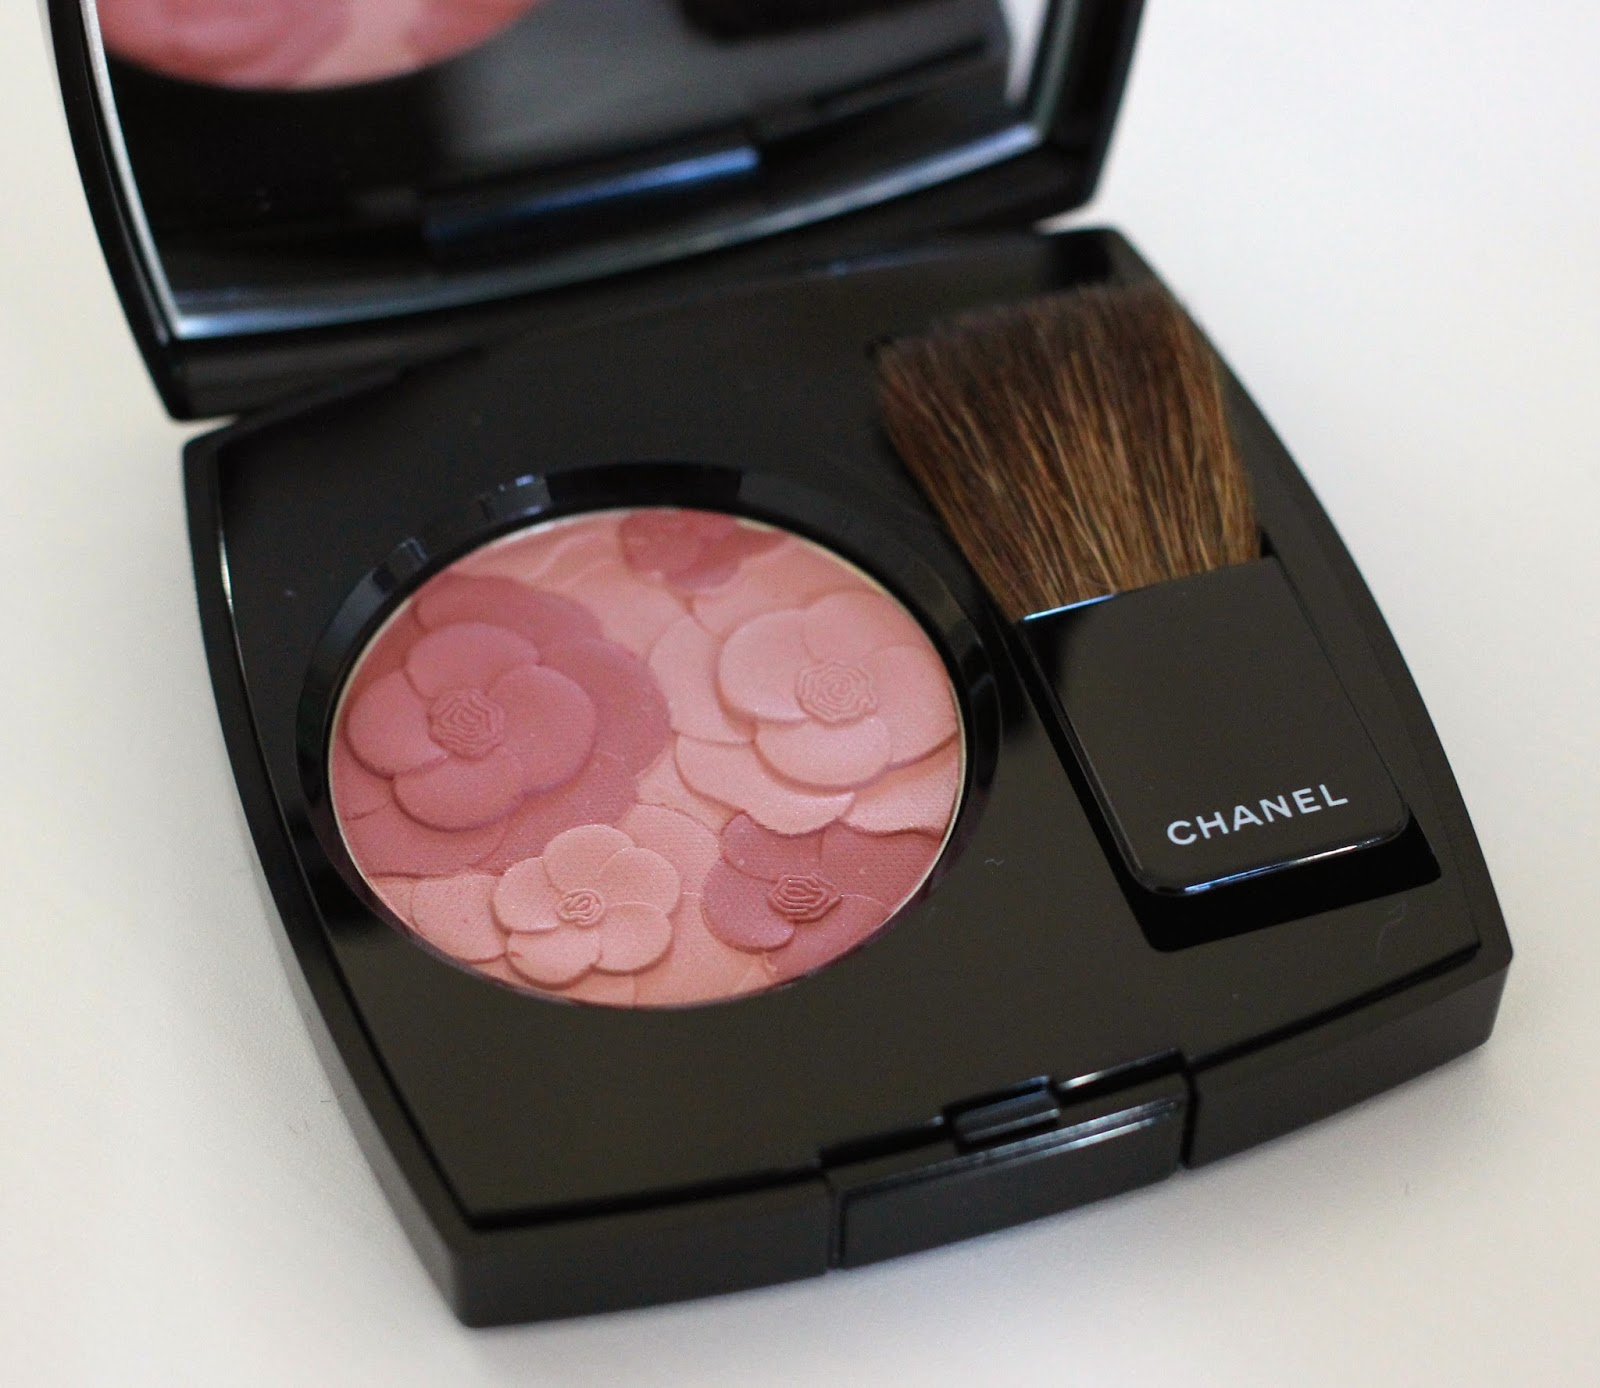 Review jardin de chanel blush camelia rose just lovely for Jardin de chanel blush 2015 kaufen